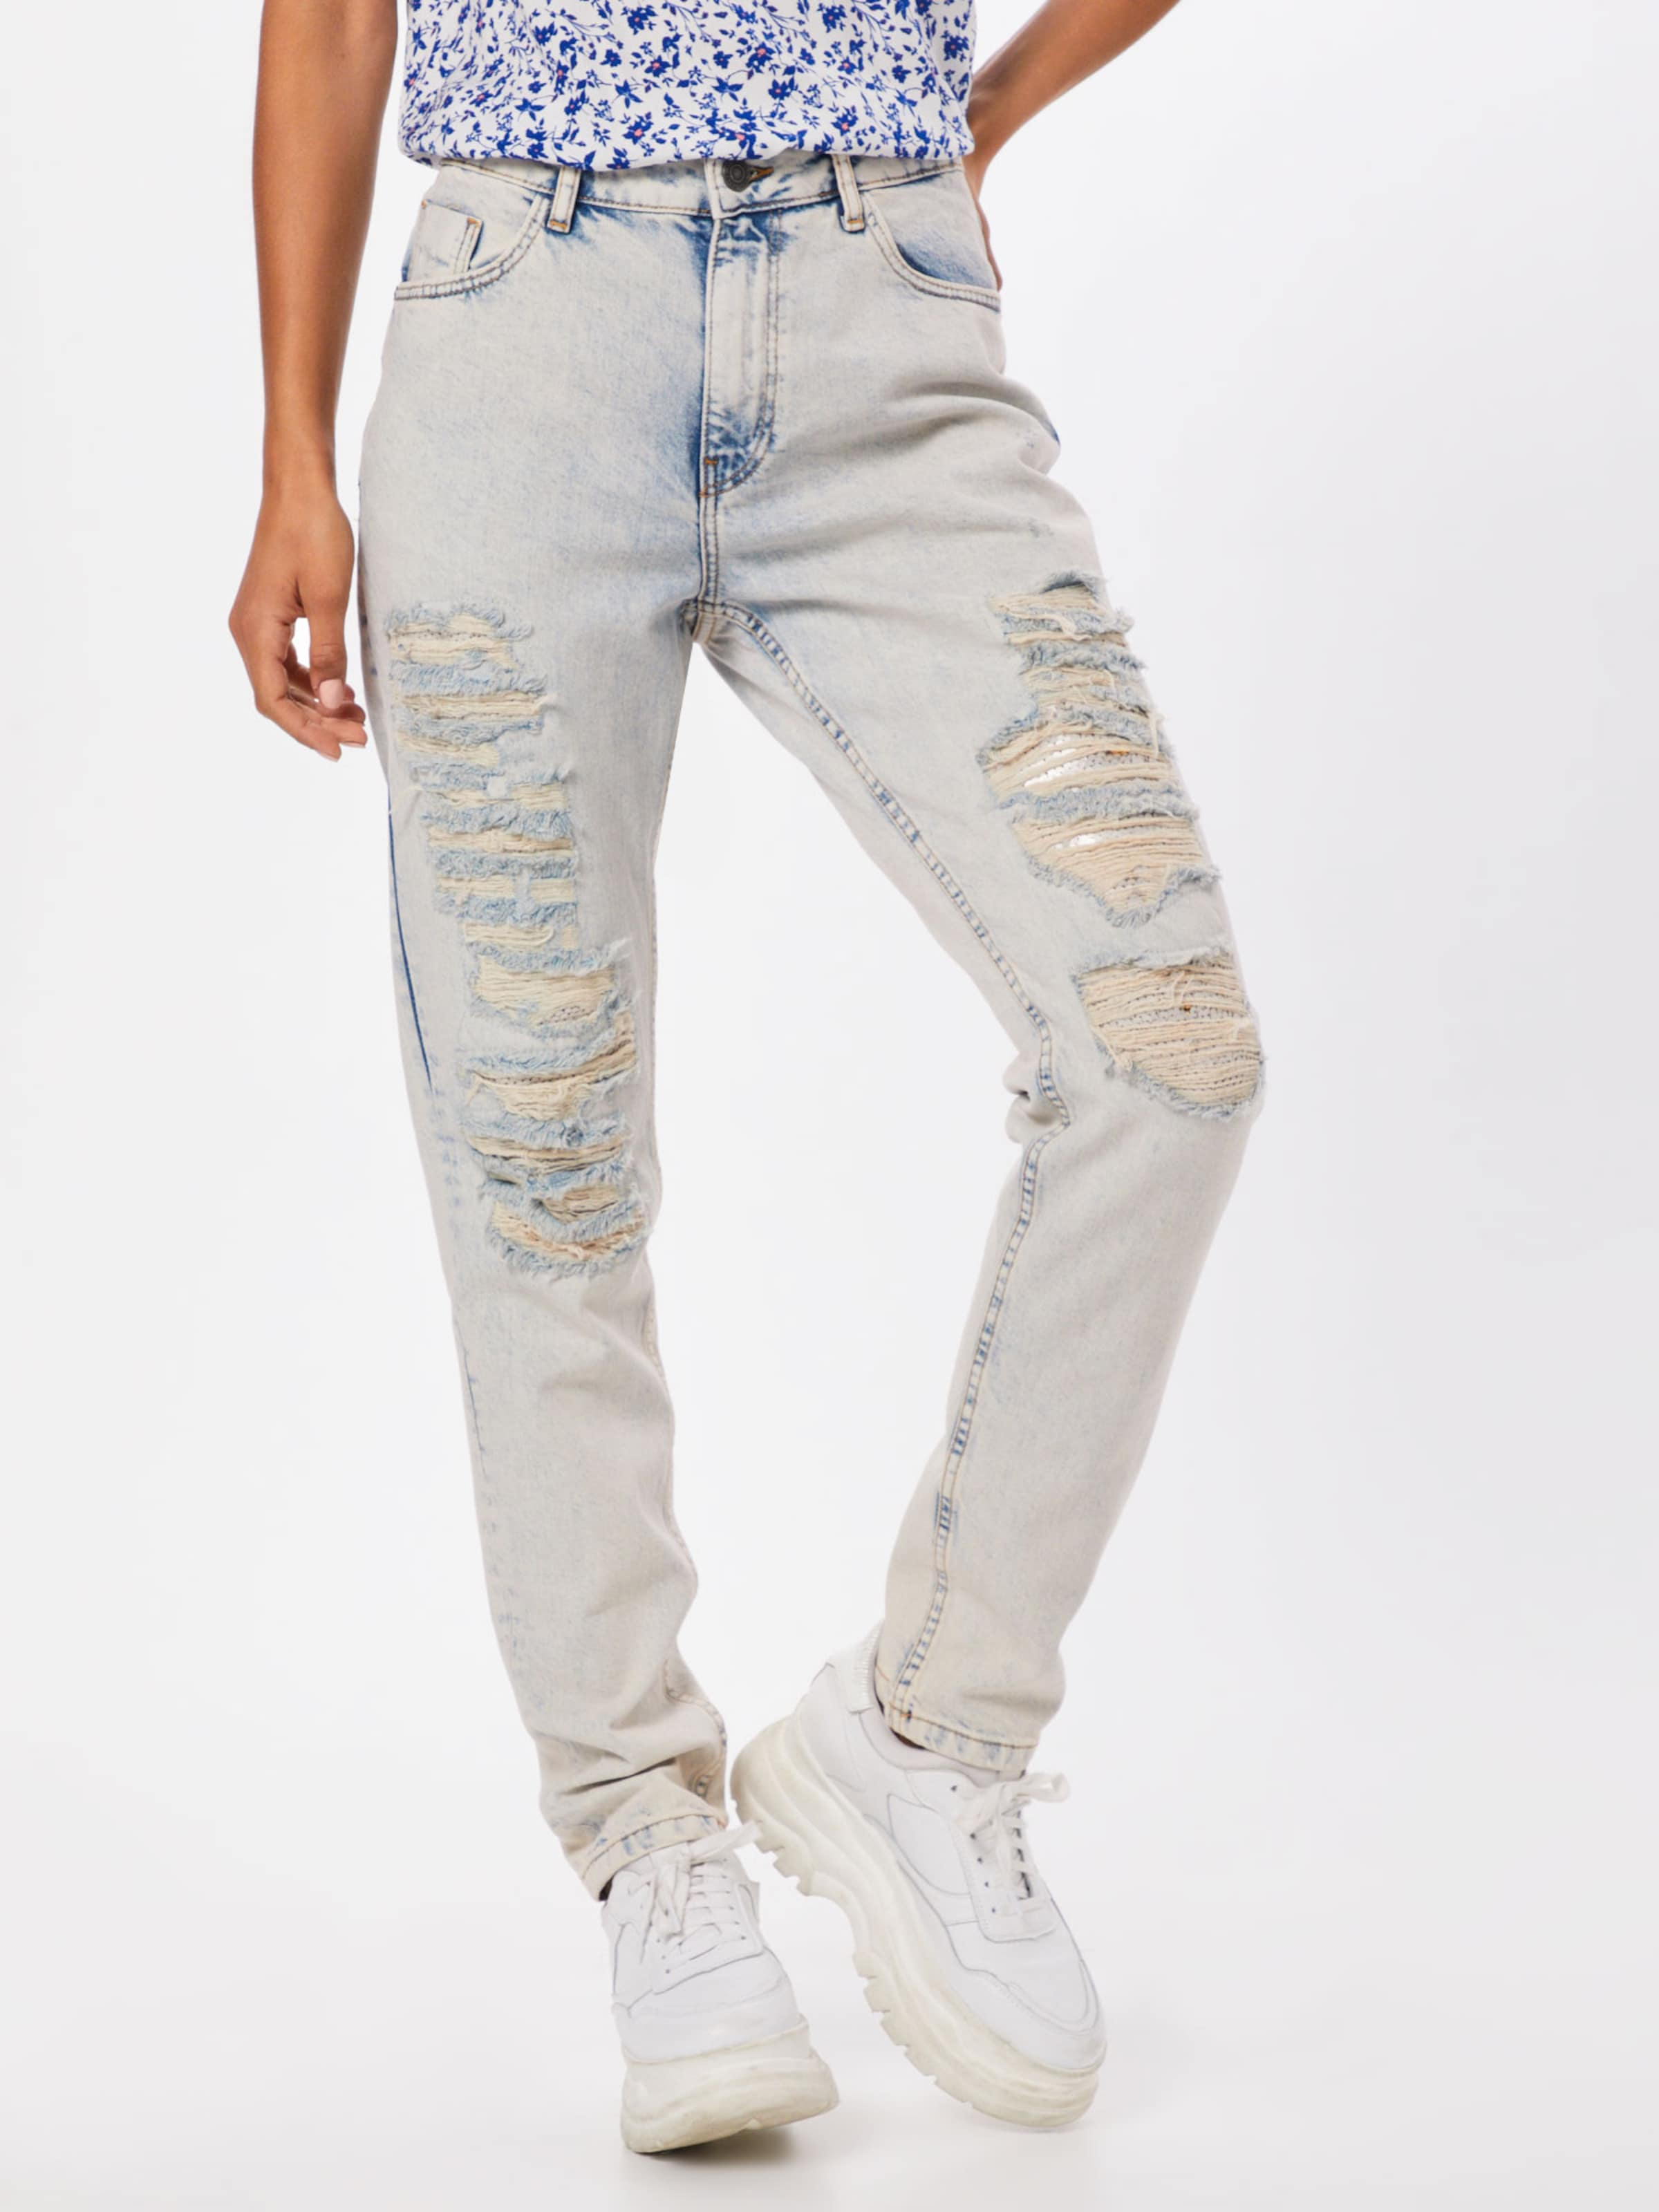 In May Grey Denim Jeans 'donna' Noisy 2WIDHYE9